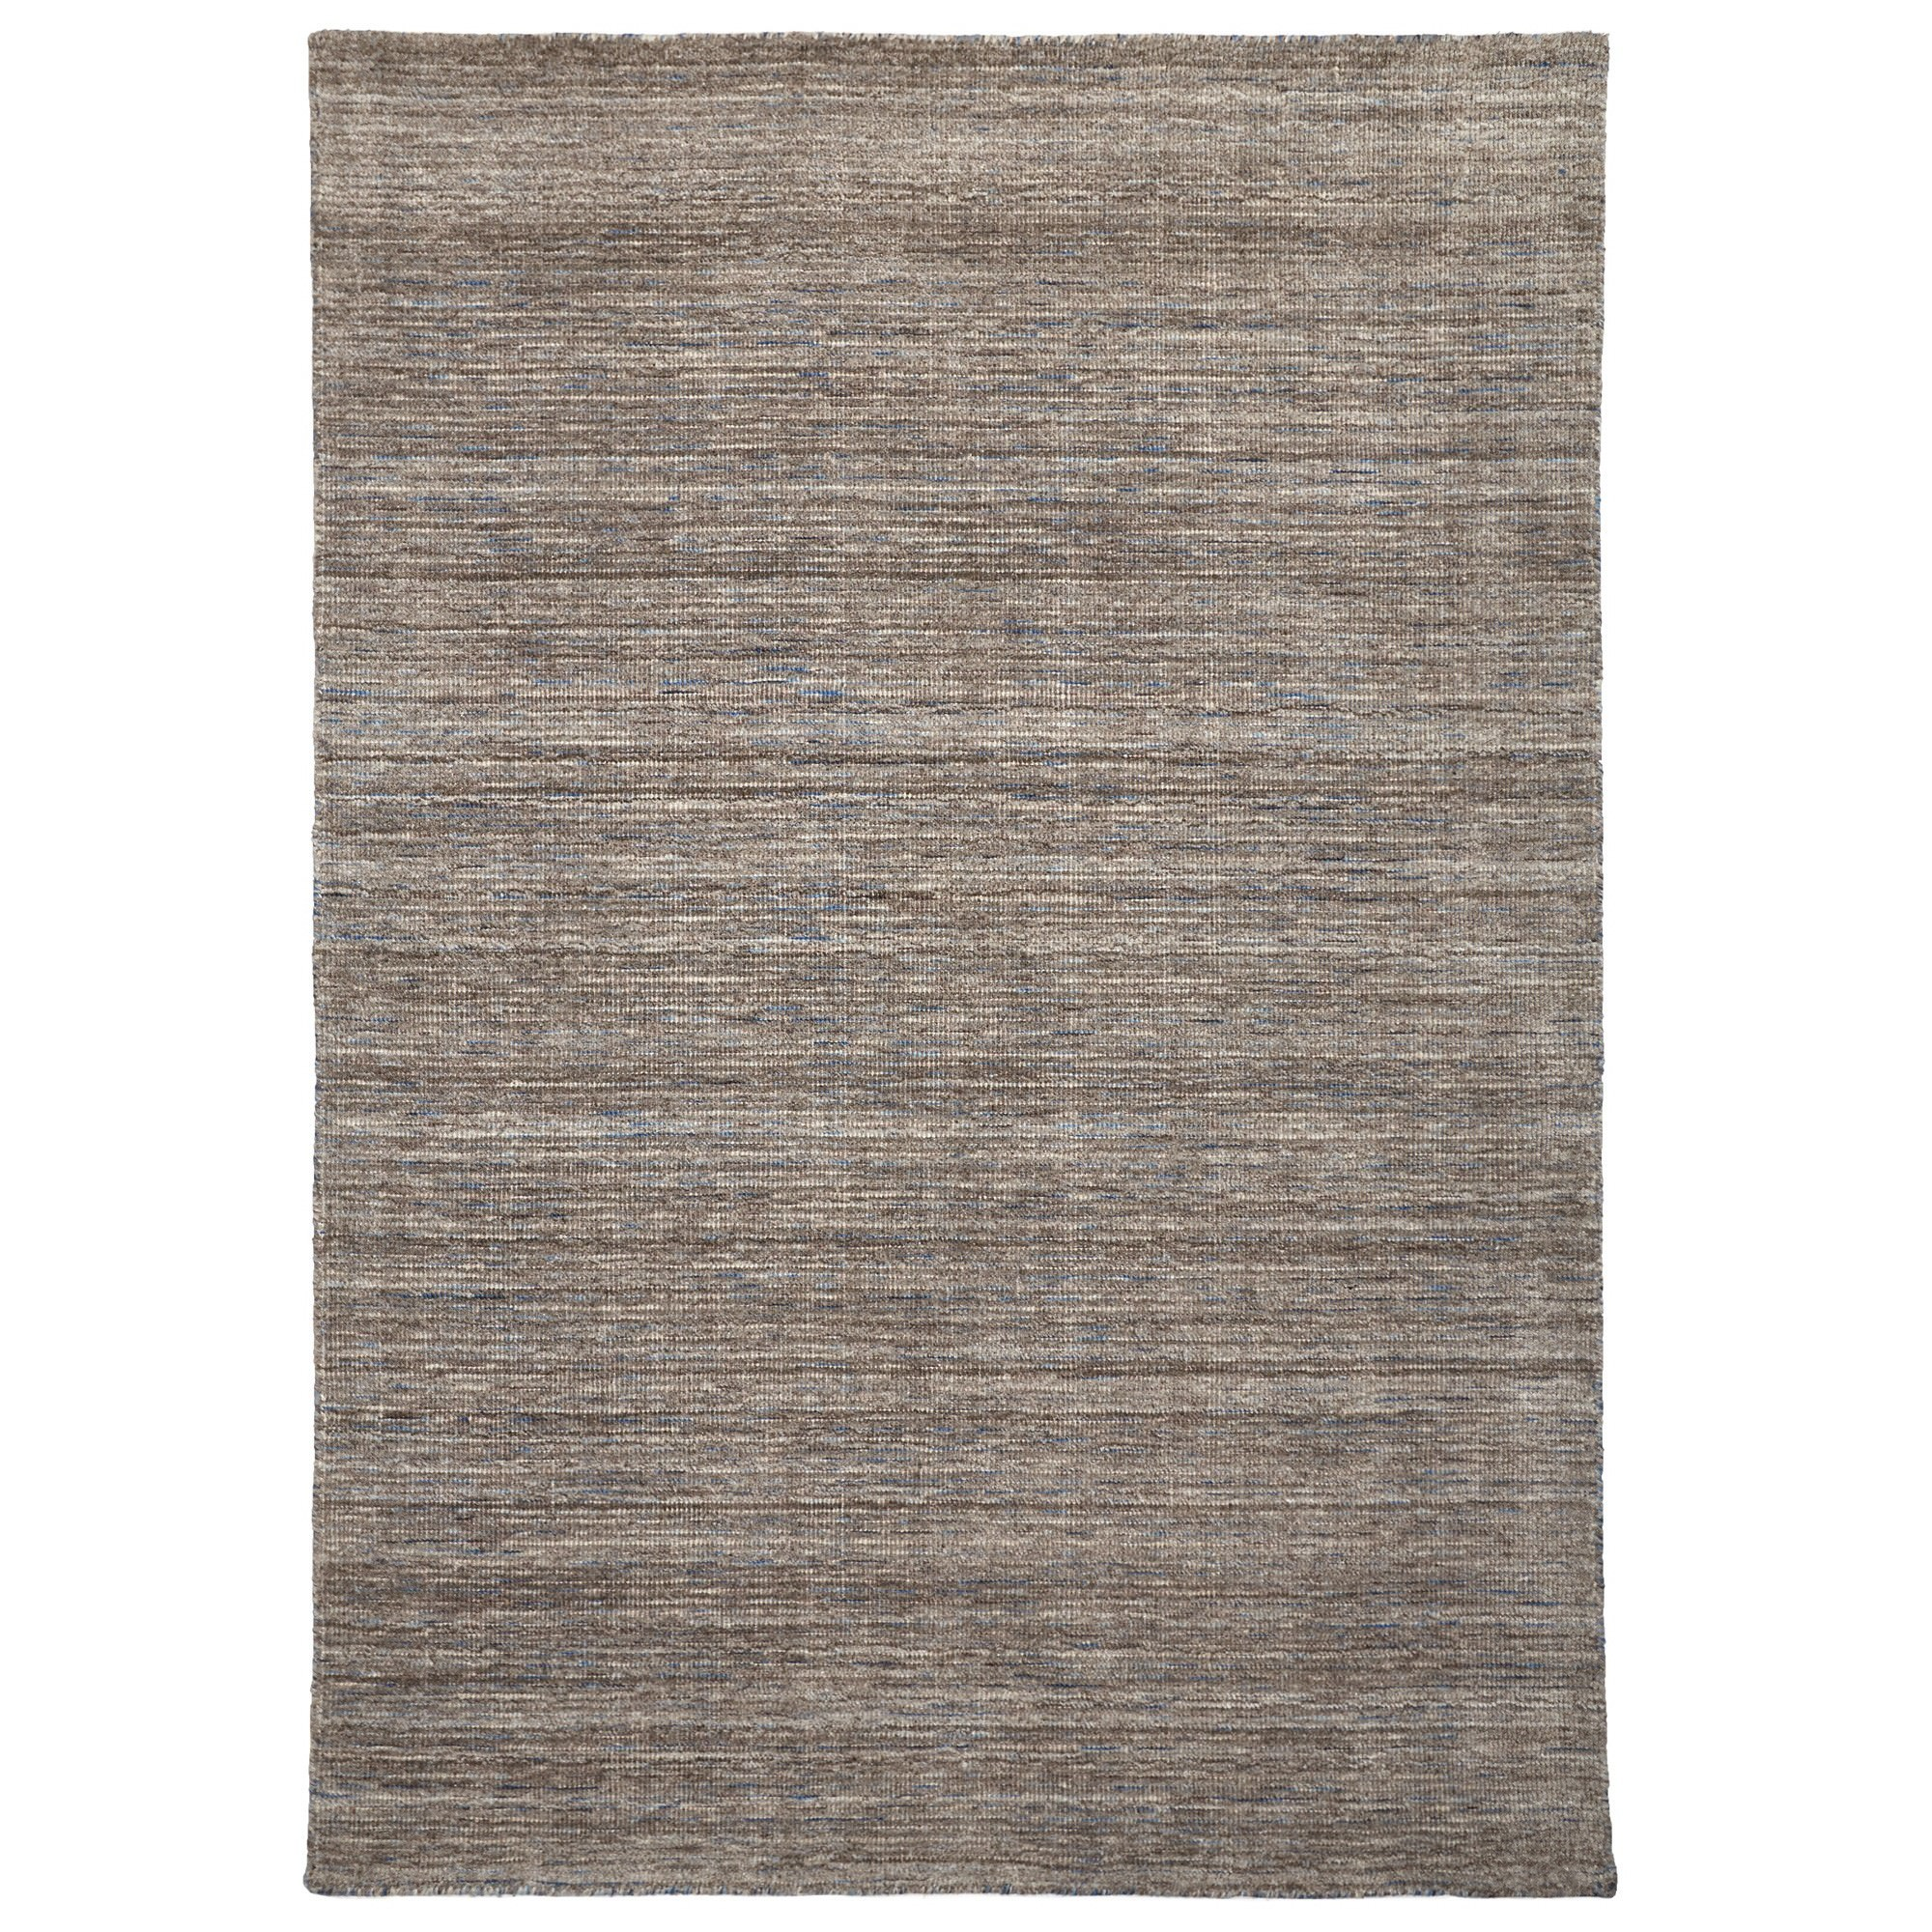 London Wool Rug, 160x110cm, Fawn